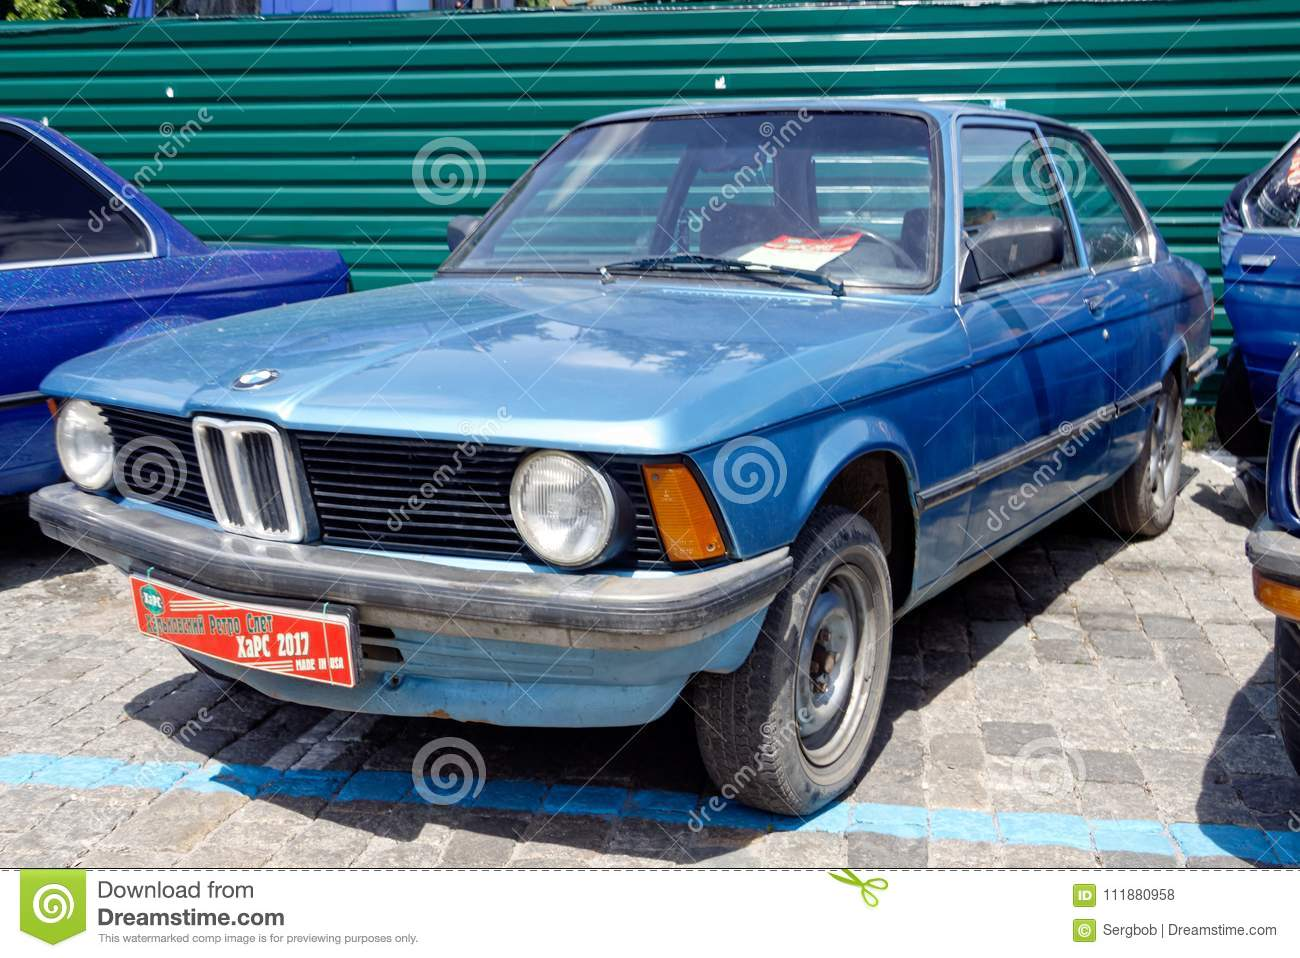 hight resolution of imagen com n automotriz del vintage de bmw e21 315